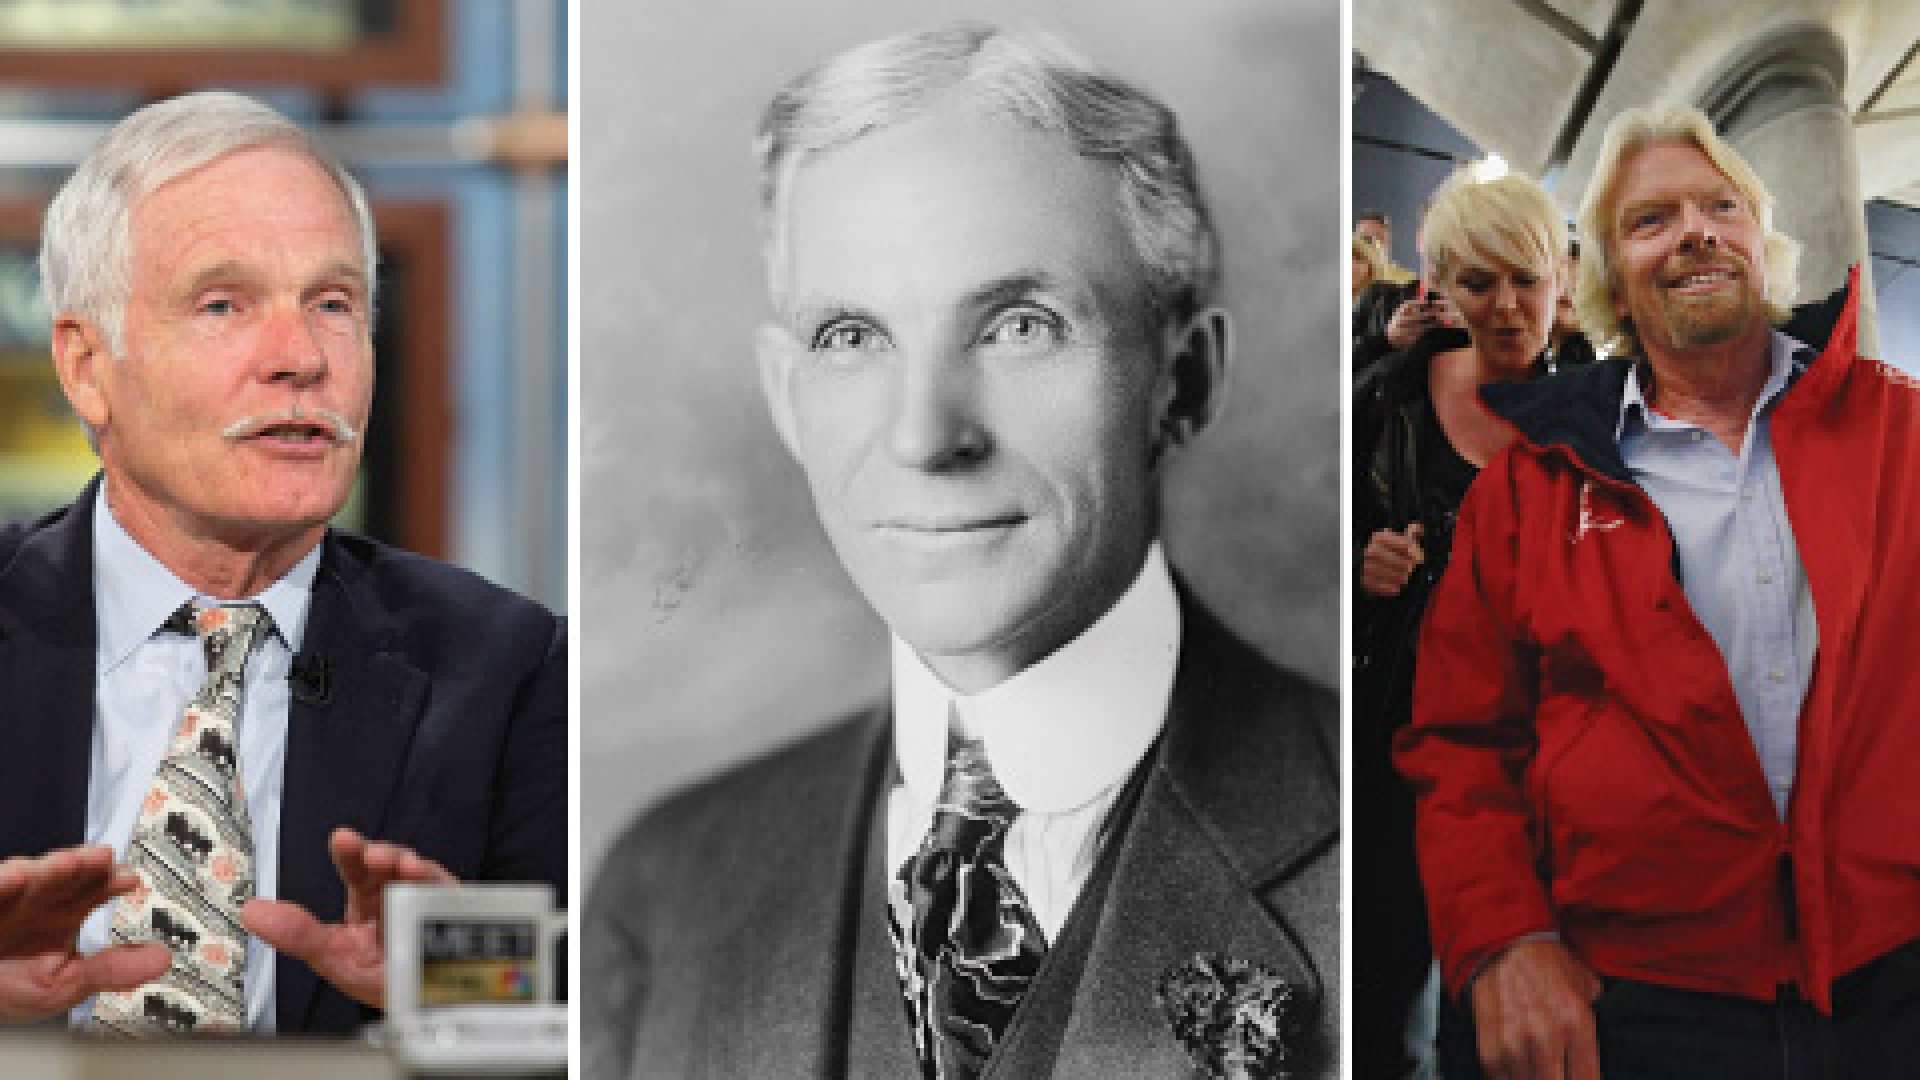 Ted Turner, Henry Ford and Richard Branson. Dyslexia may have nurtured their street smarts and resilience.